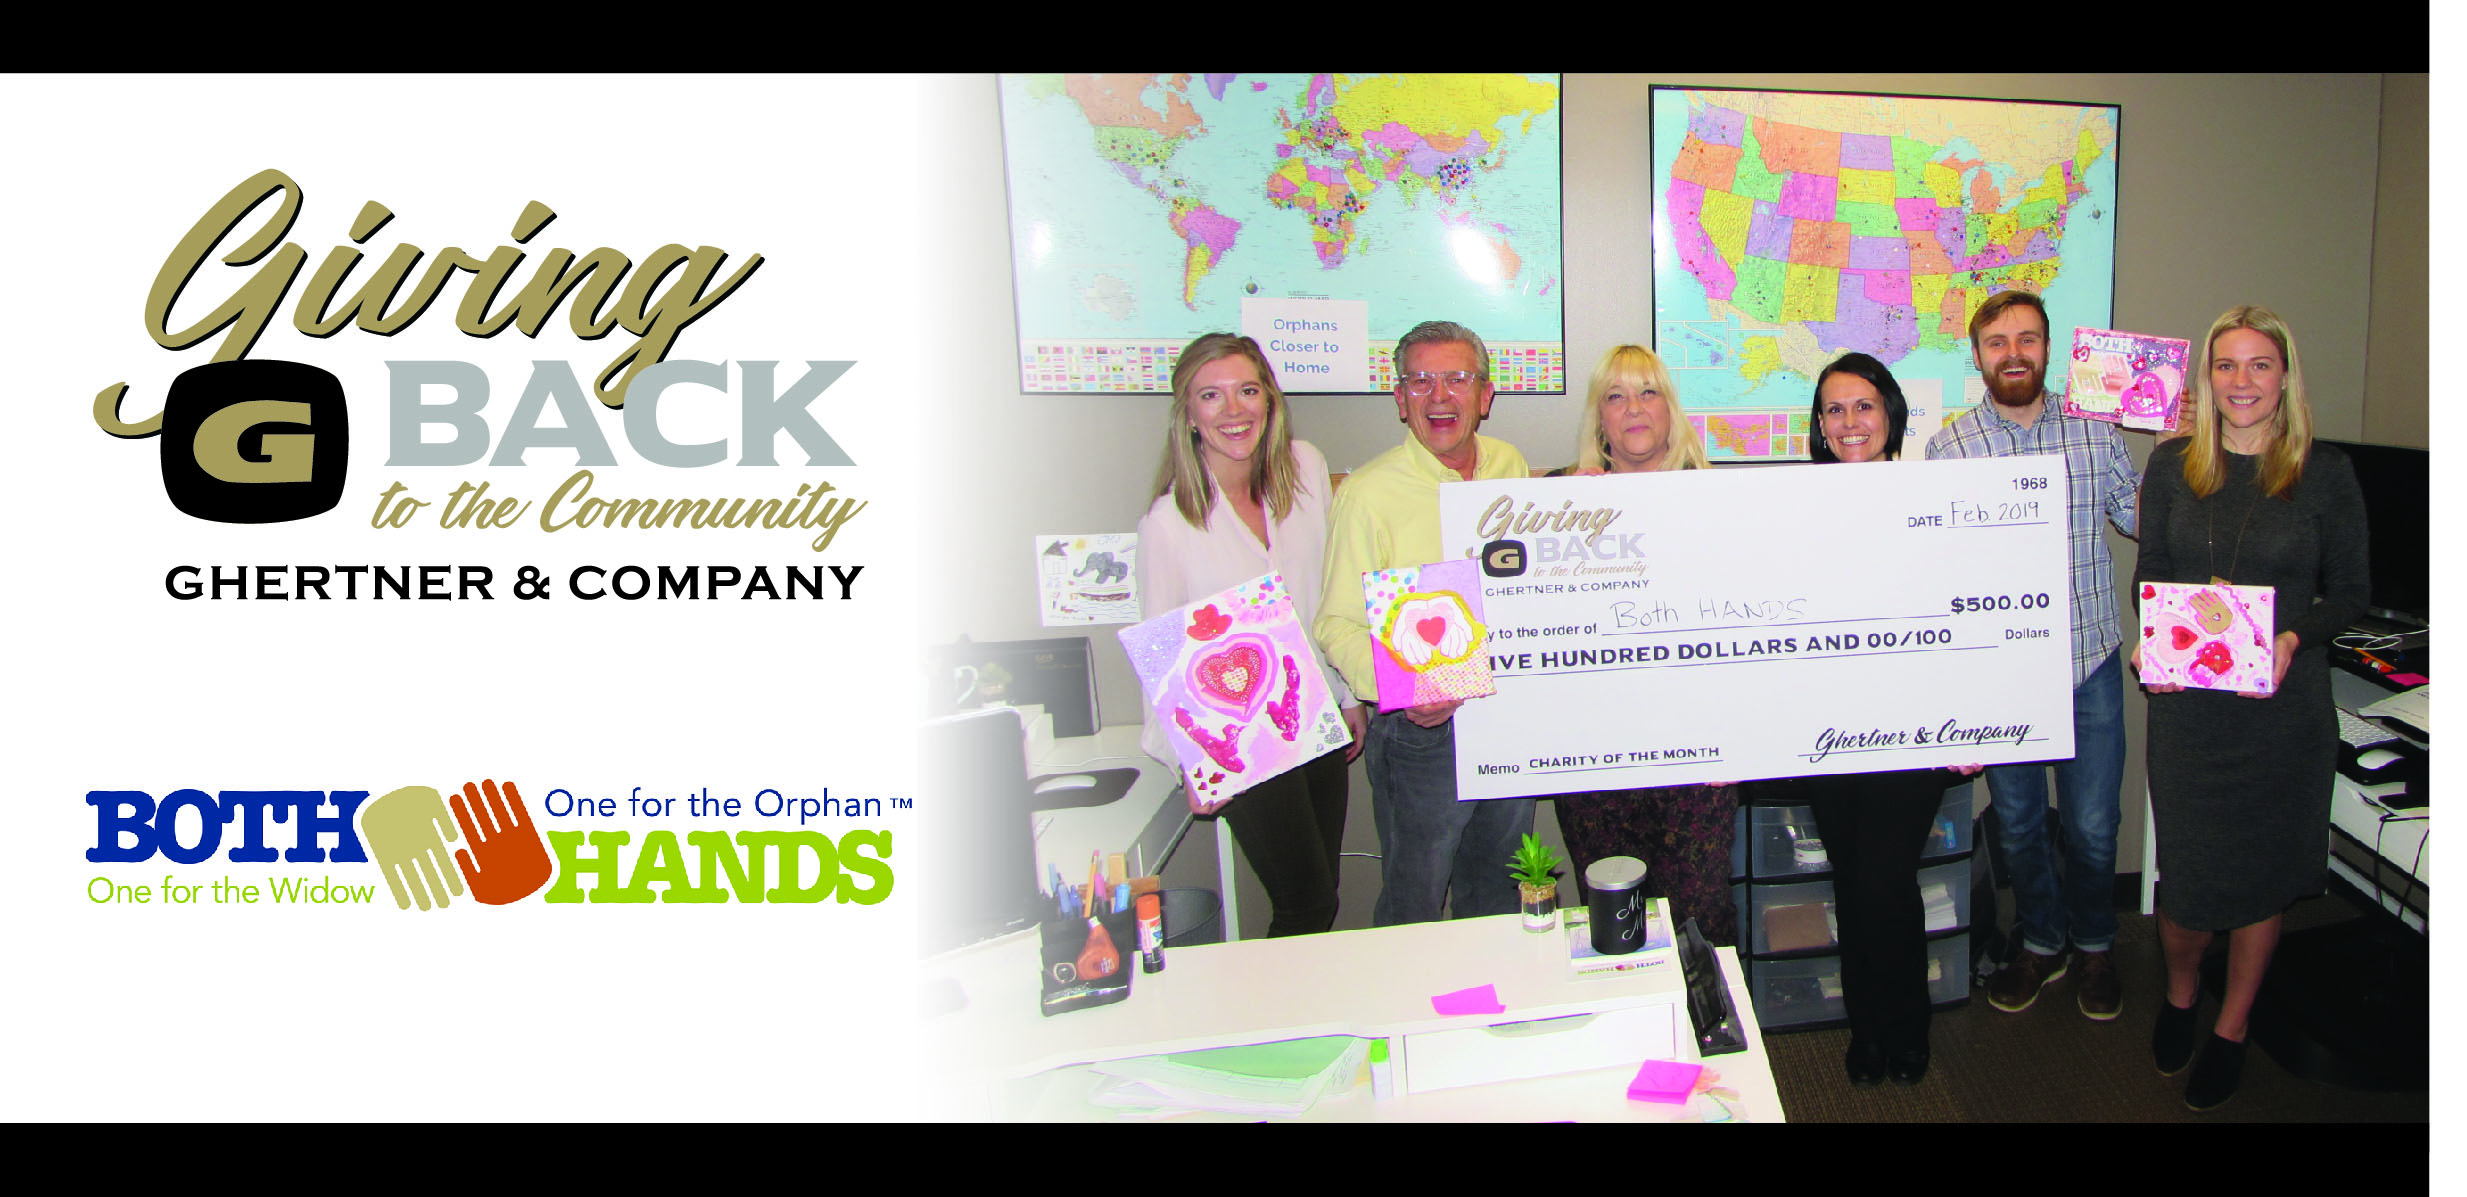 Pictured at the check presentation are Both Hands team members Bethany Purdy, Founder JT Olson, John Ericson and Aimee Sipe. Ghertner & Company associates present were Jaye Kloss and Kim Maynord (centered behind the check). In an effort to support organizations within the Middle Tennessee that are making a difference, Ghertner & Company is providing a $500 donation.